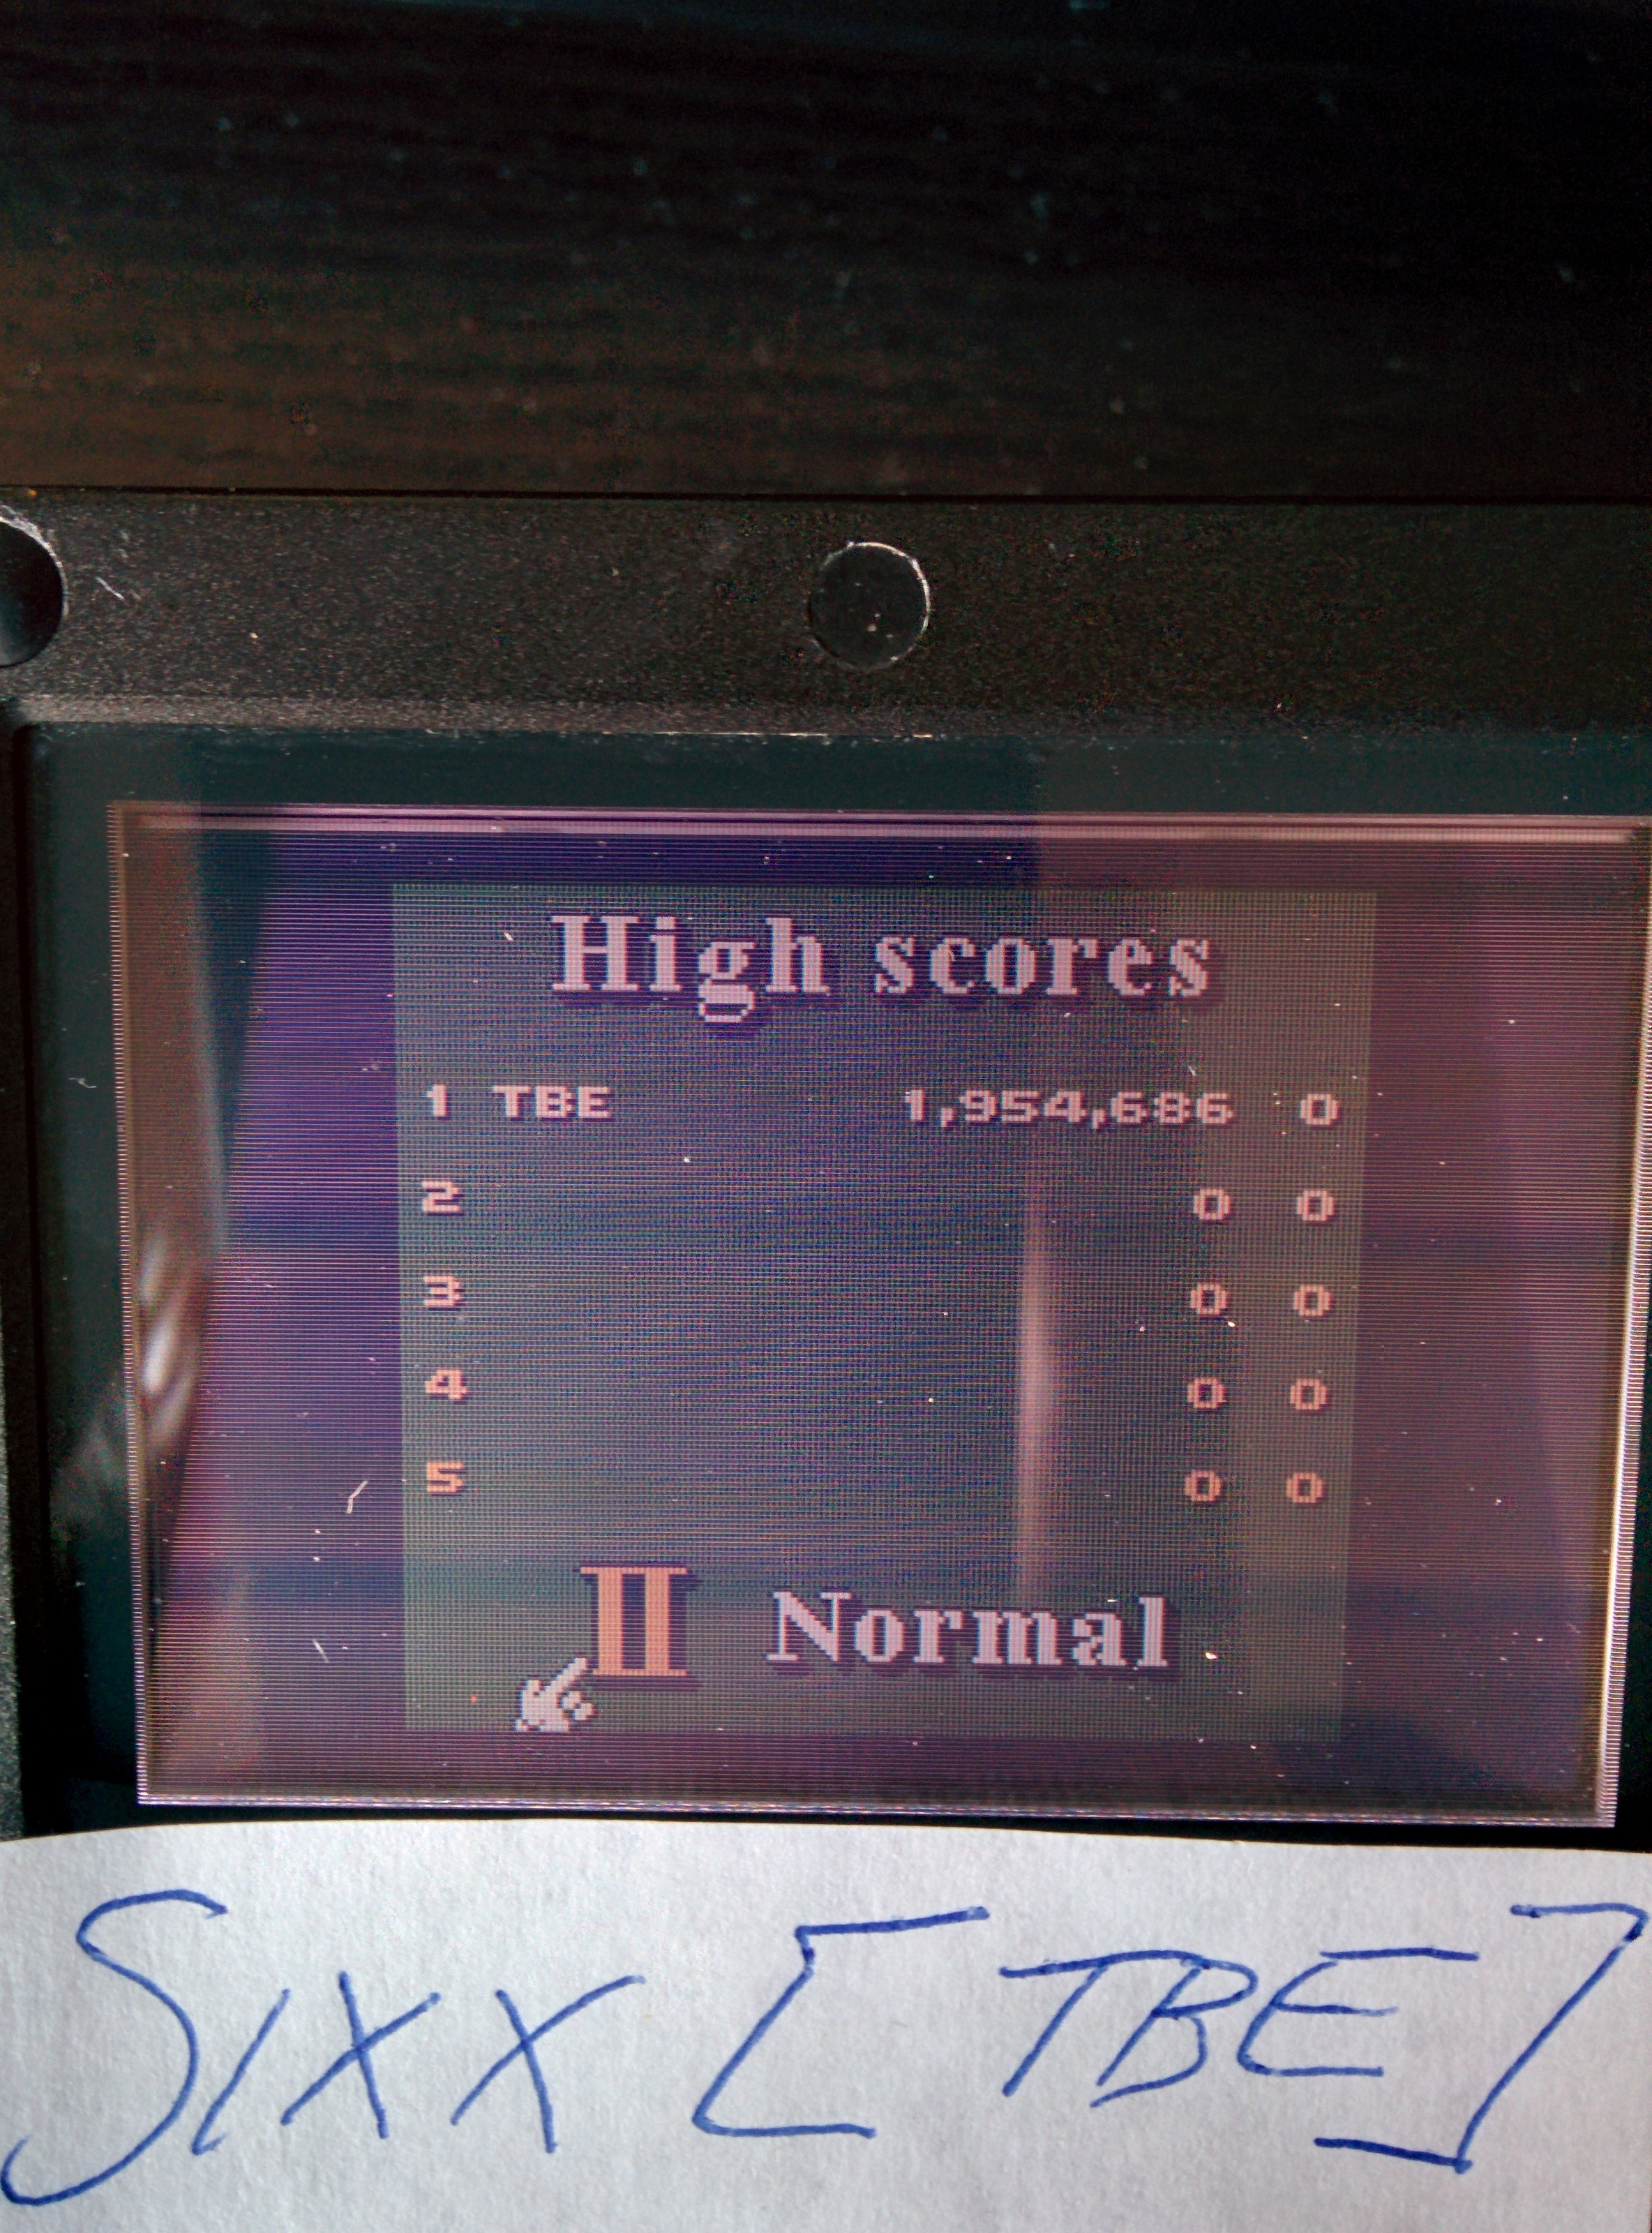 Sixx: 3D Ultra Pinball Thrillride: Normal (Game Boy Color) 1,954,686 points on 2014-08-18 12:41:42